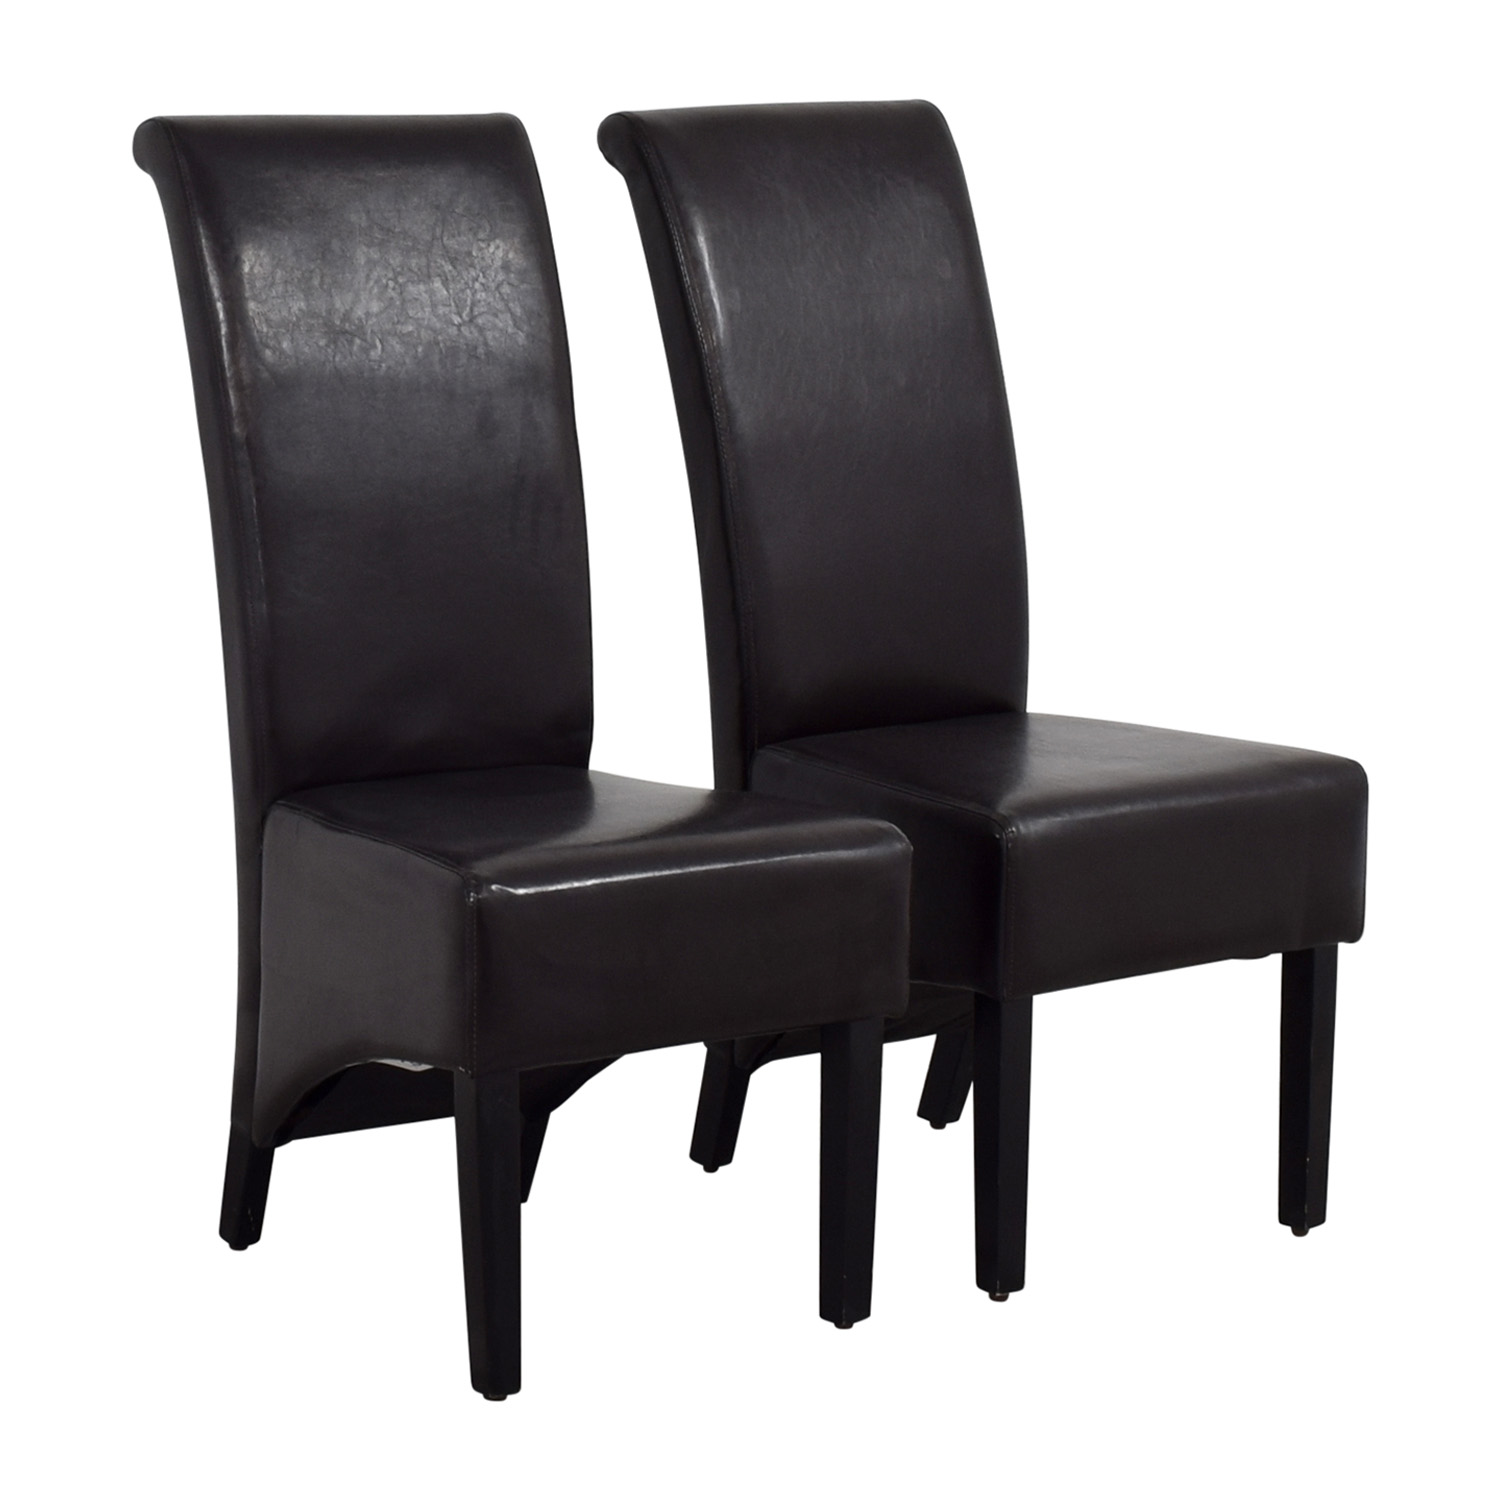 buy Padded Brown Leatherette High Back Dining Chairs Accent Chairs